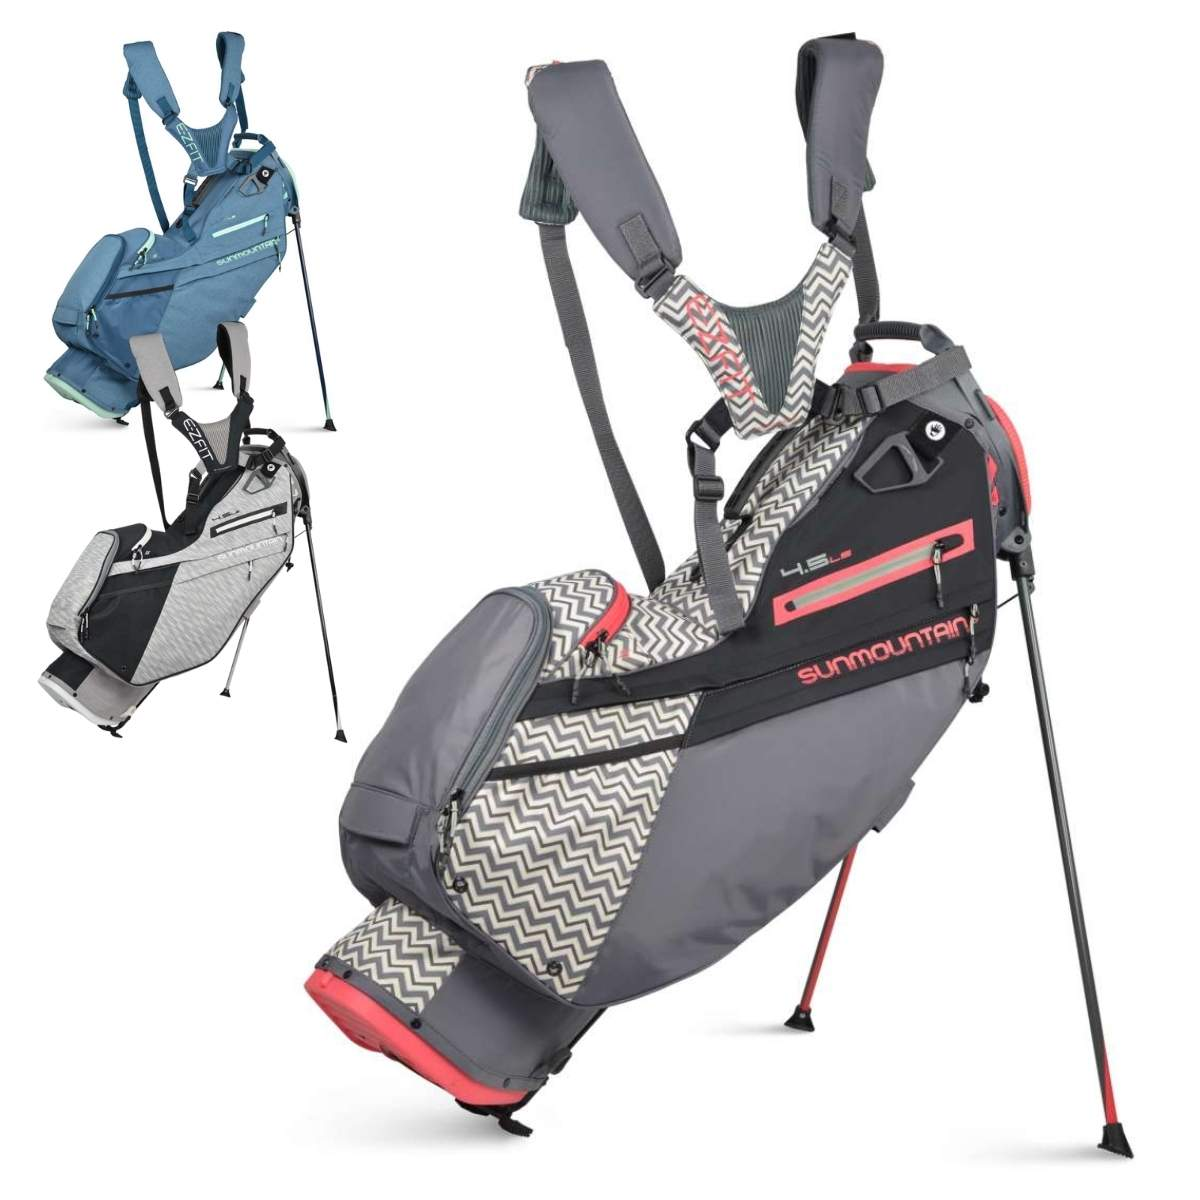 Sun Mountain Women's 2021 4.5 LS 4-Way Stand Bag